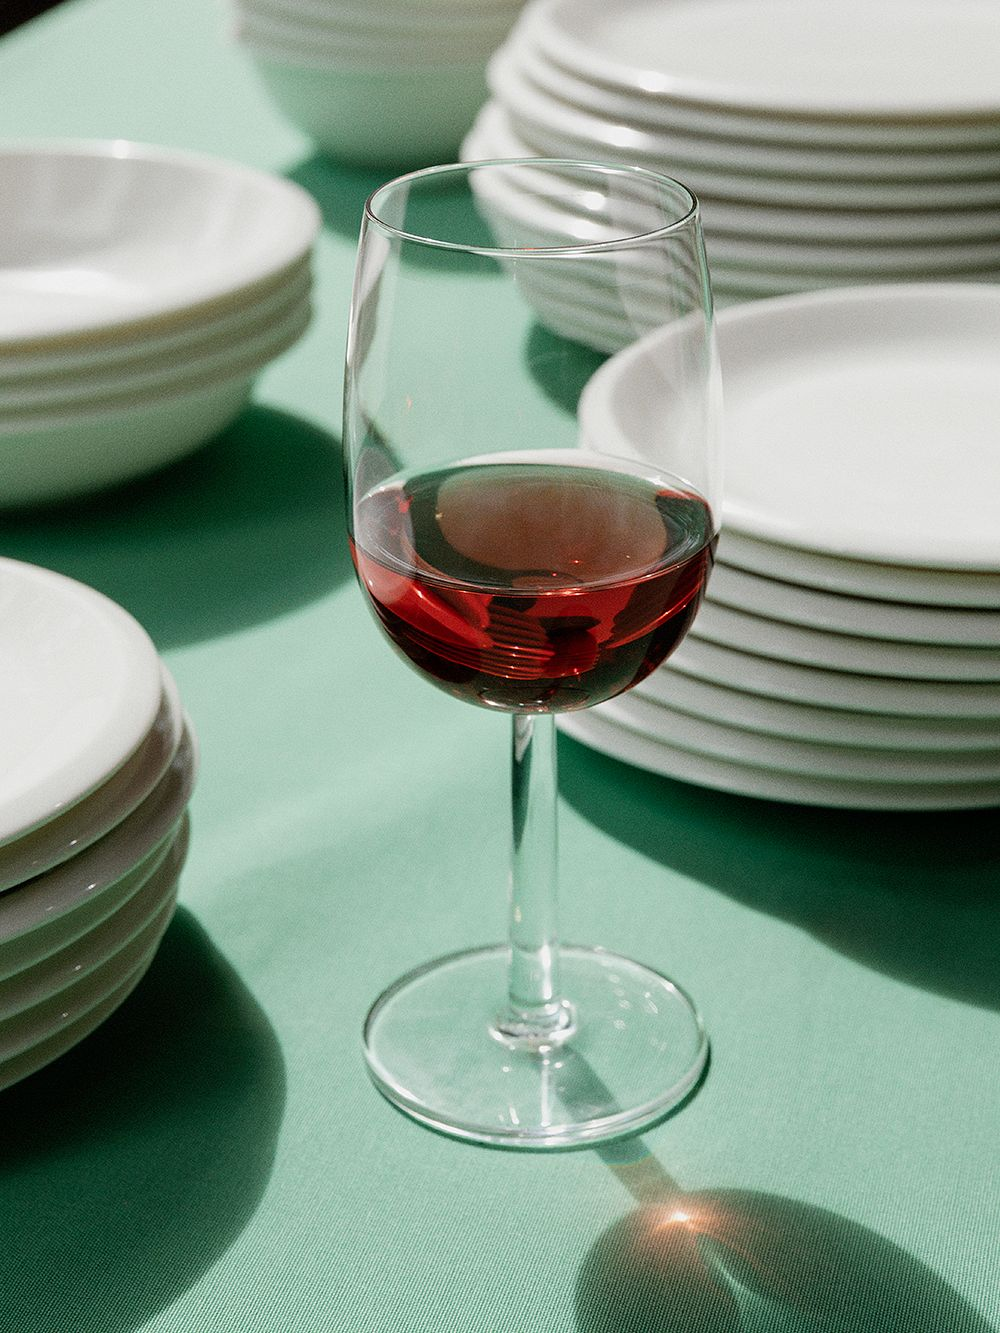 Iittala Raami red wine glass